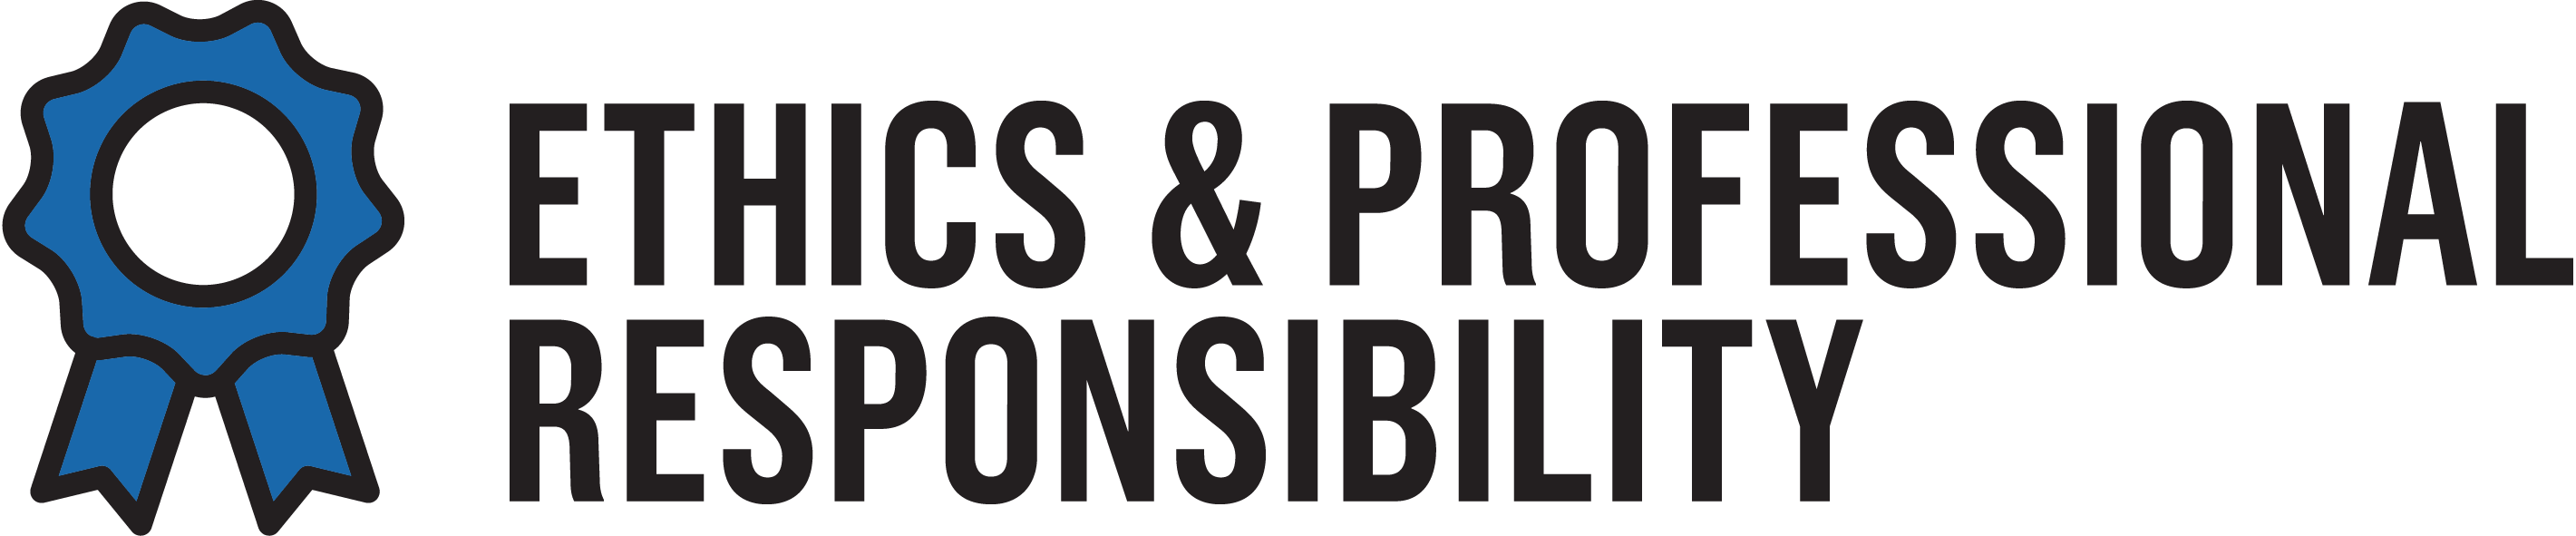 Ethics and professional responsiblity